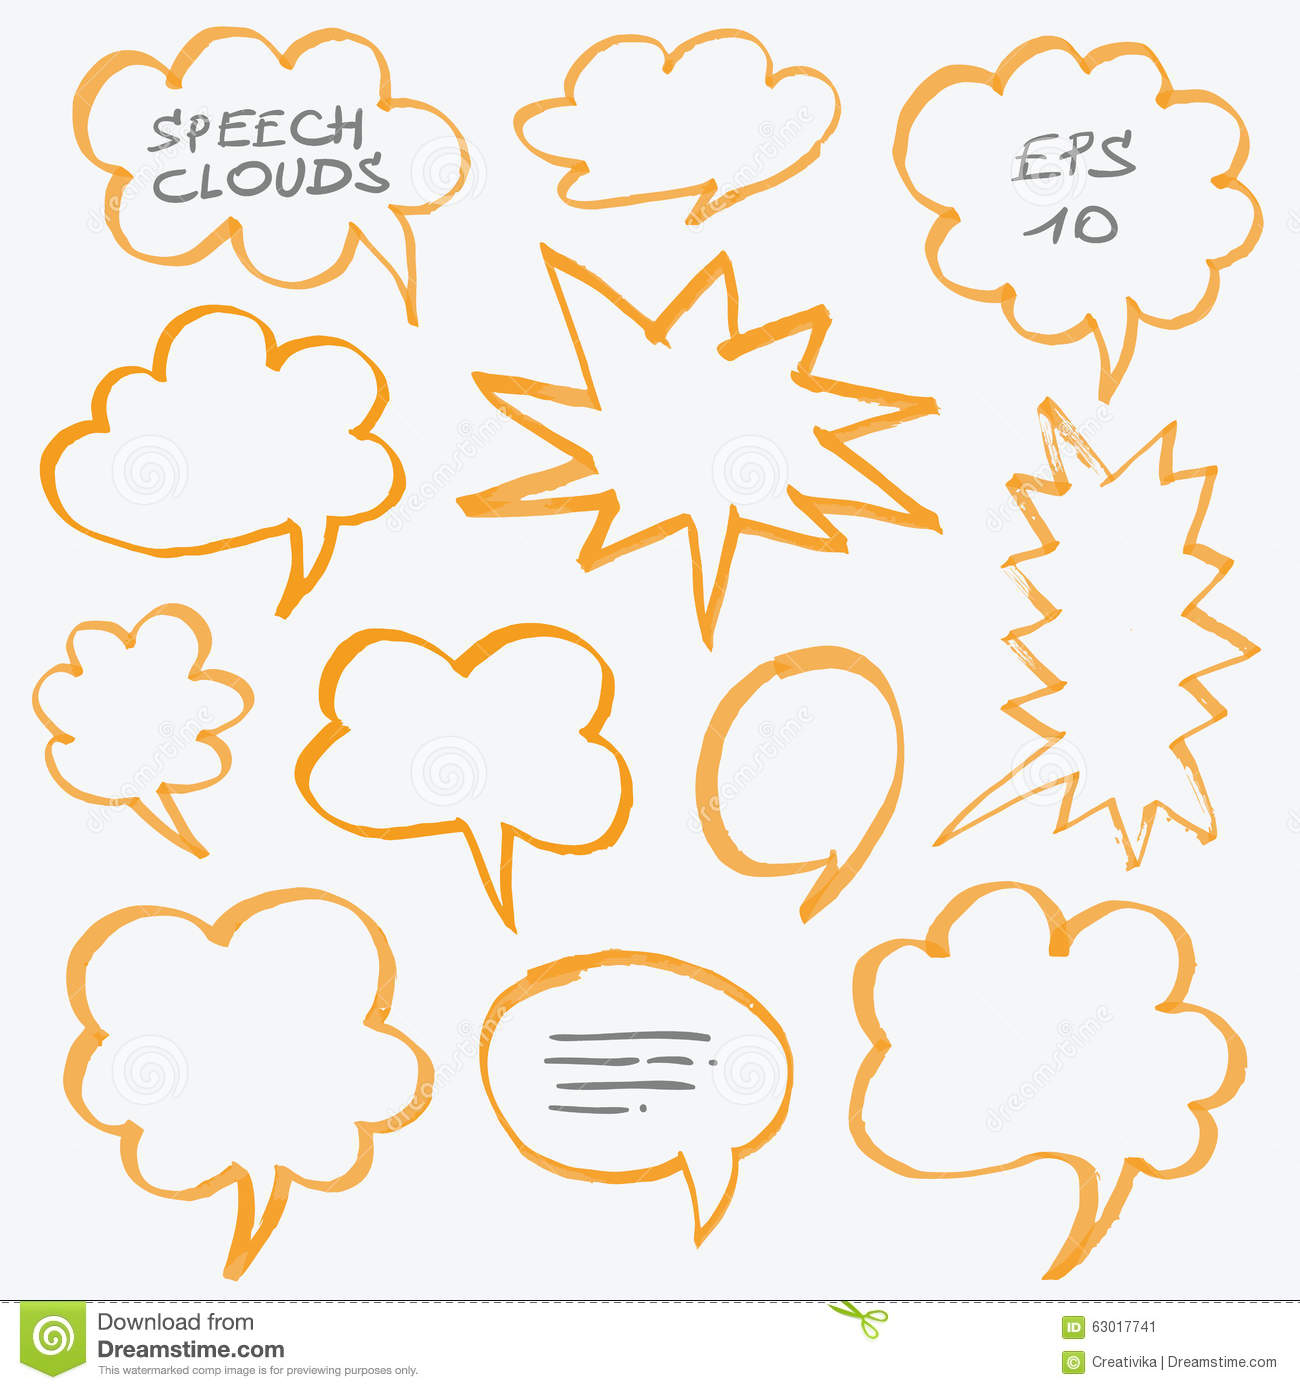 Highlighter Speech Clouds and Bubbles Design Elements